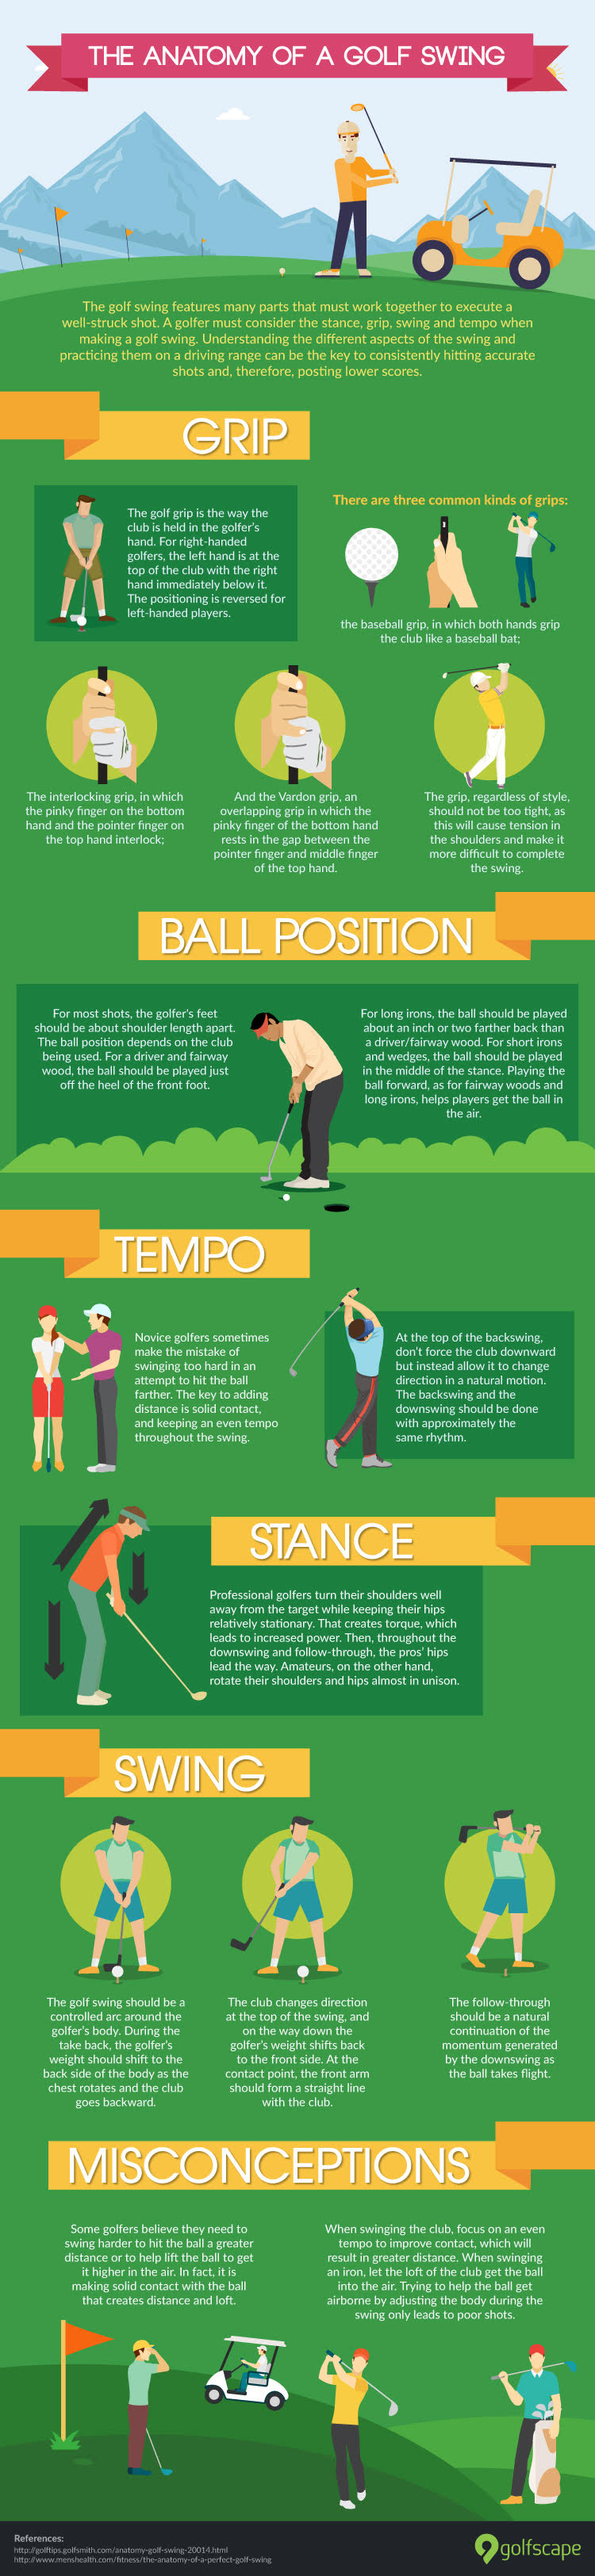 anatomy of a golf swing graphic